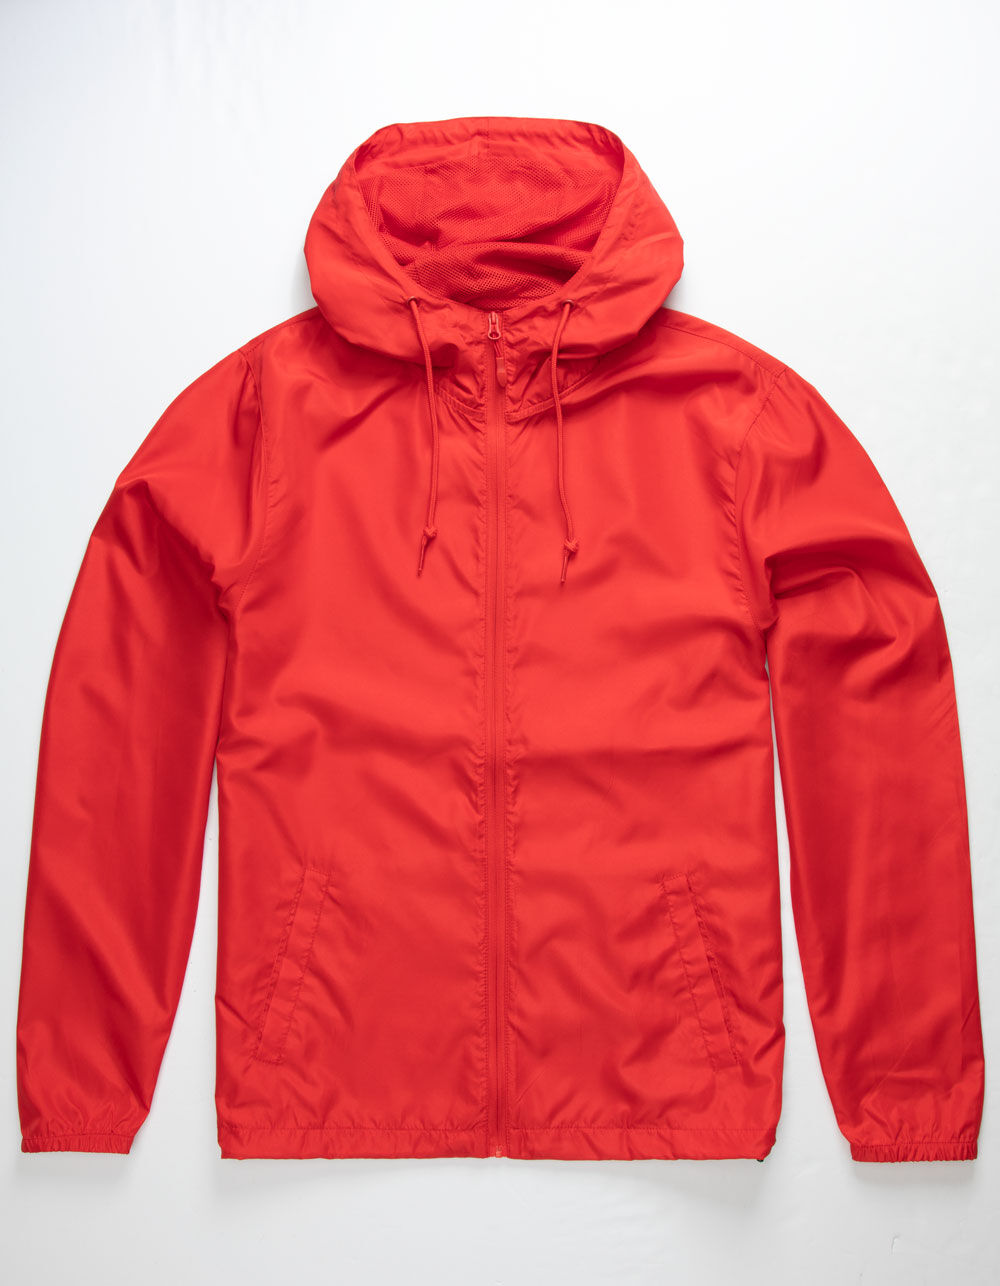 INDEPENDENT TRADING COMPANY Lightweight Red Windbreaker Jacket